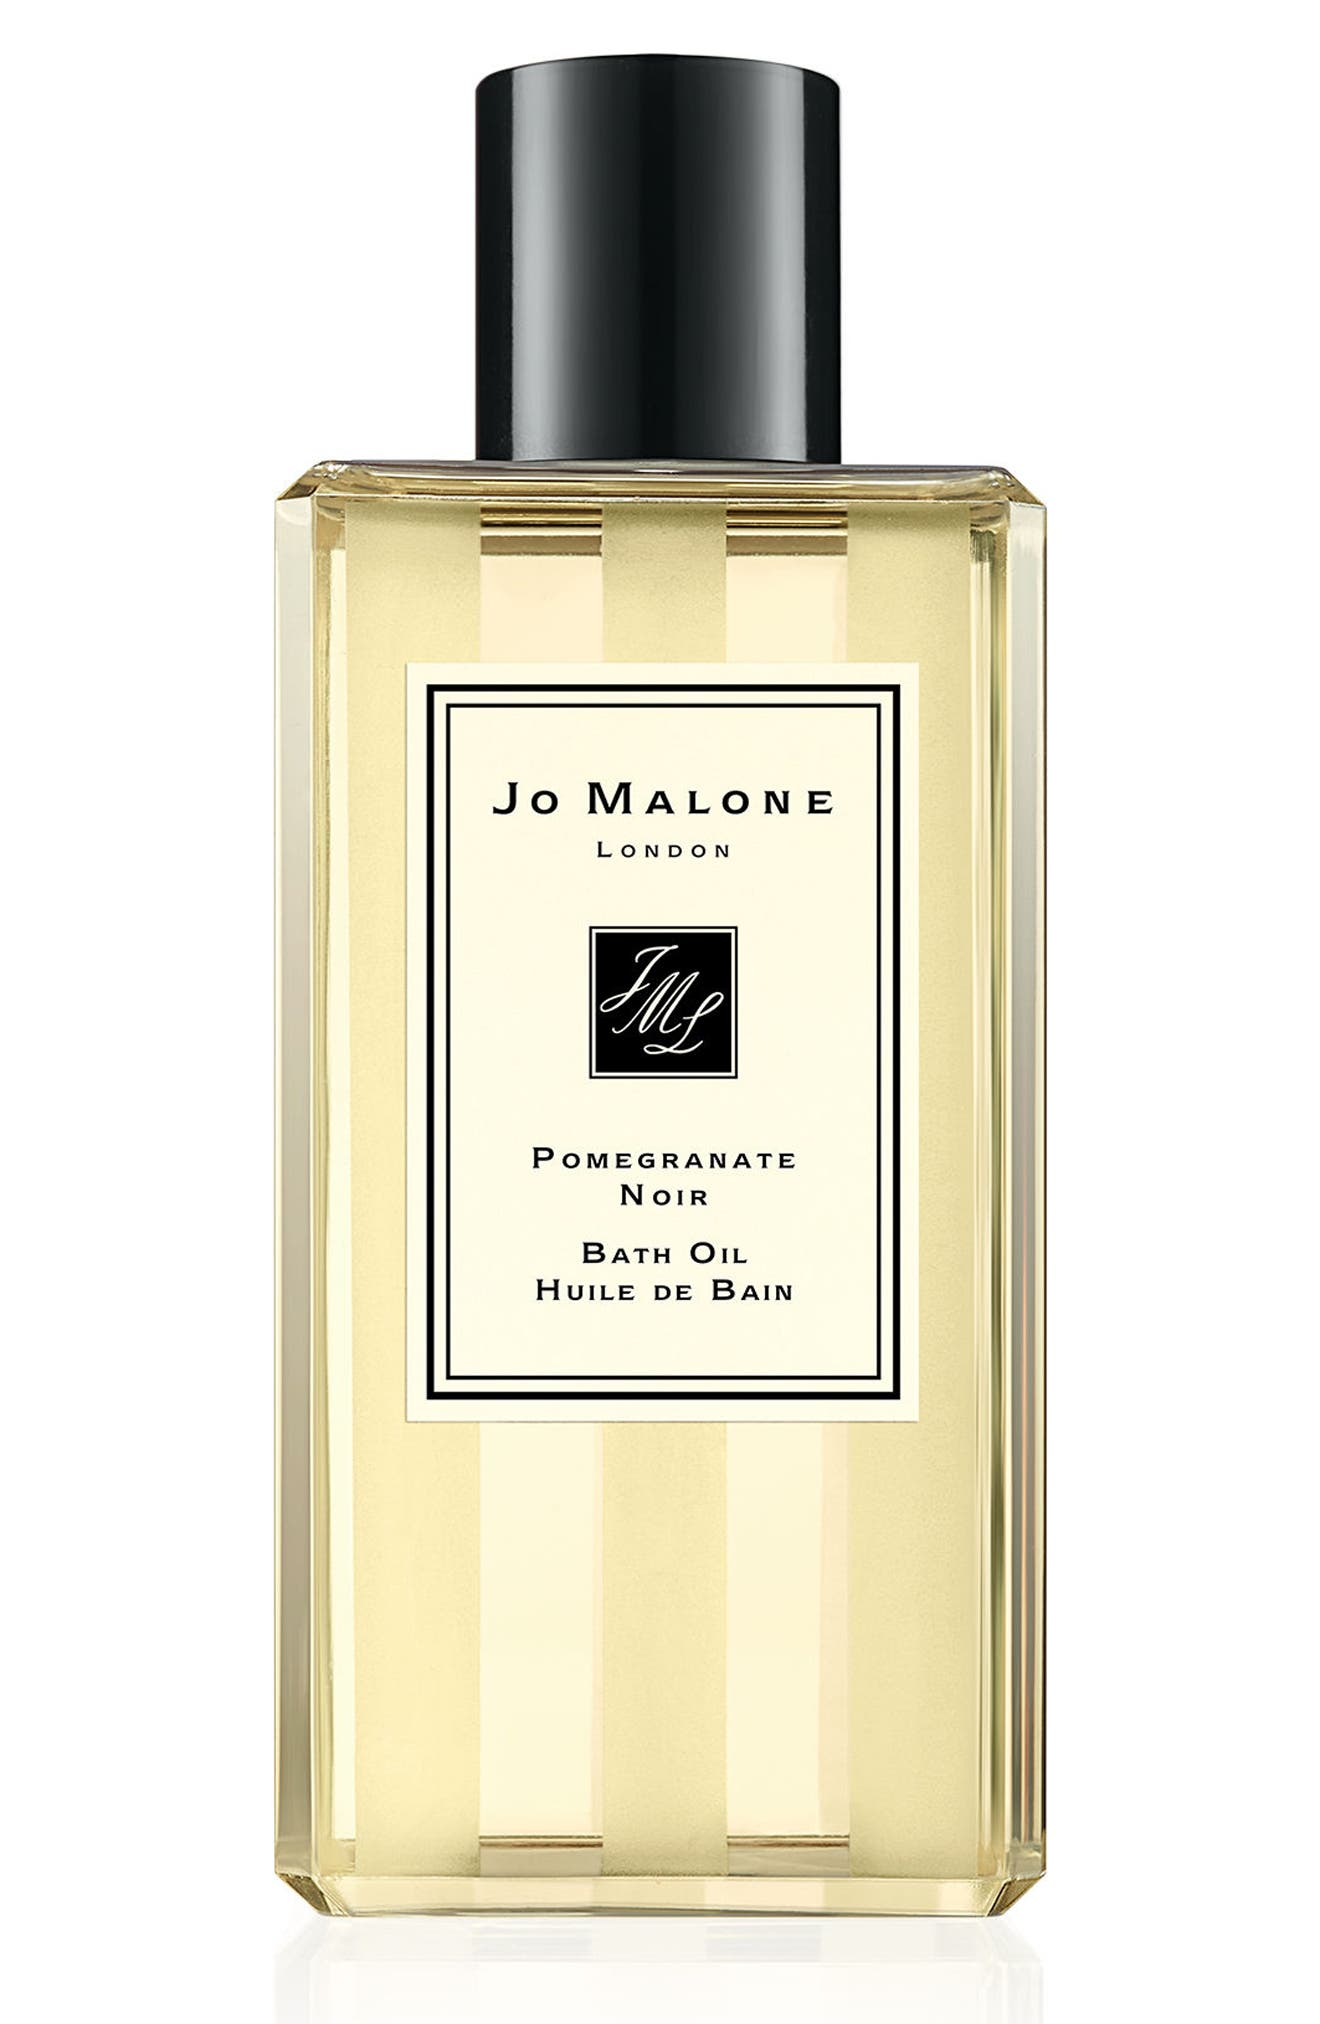 JO MALONE LONDON™ Jo Malone 'Pomegranate Noir' Bath